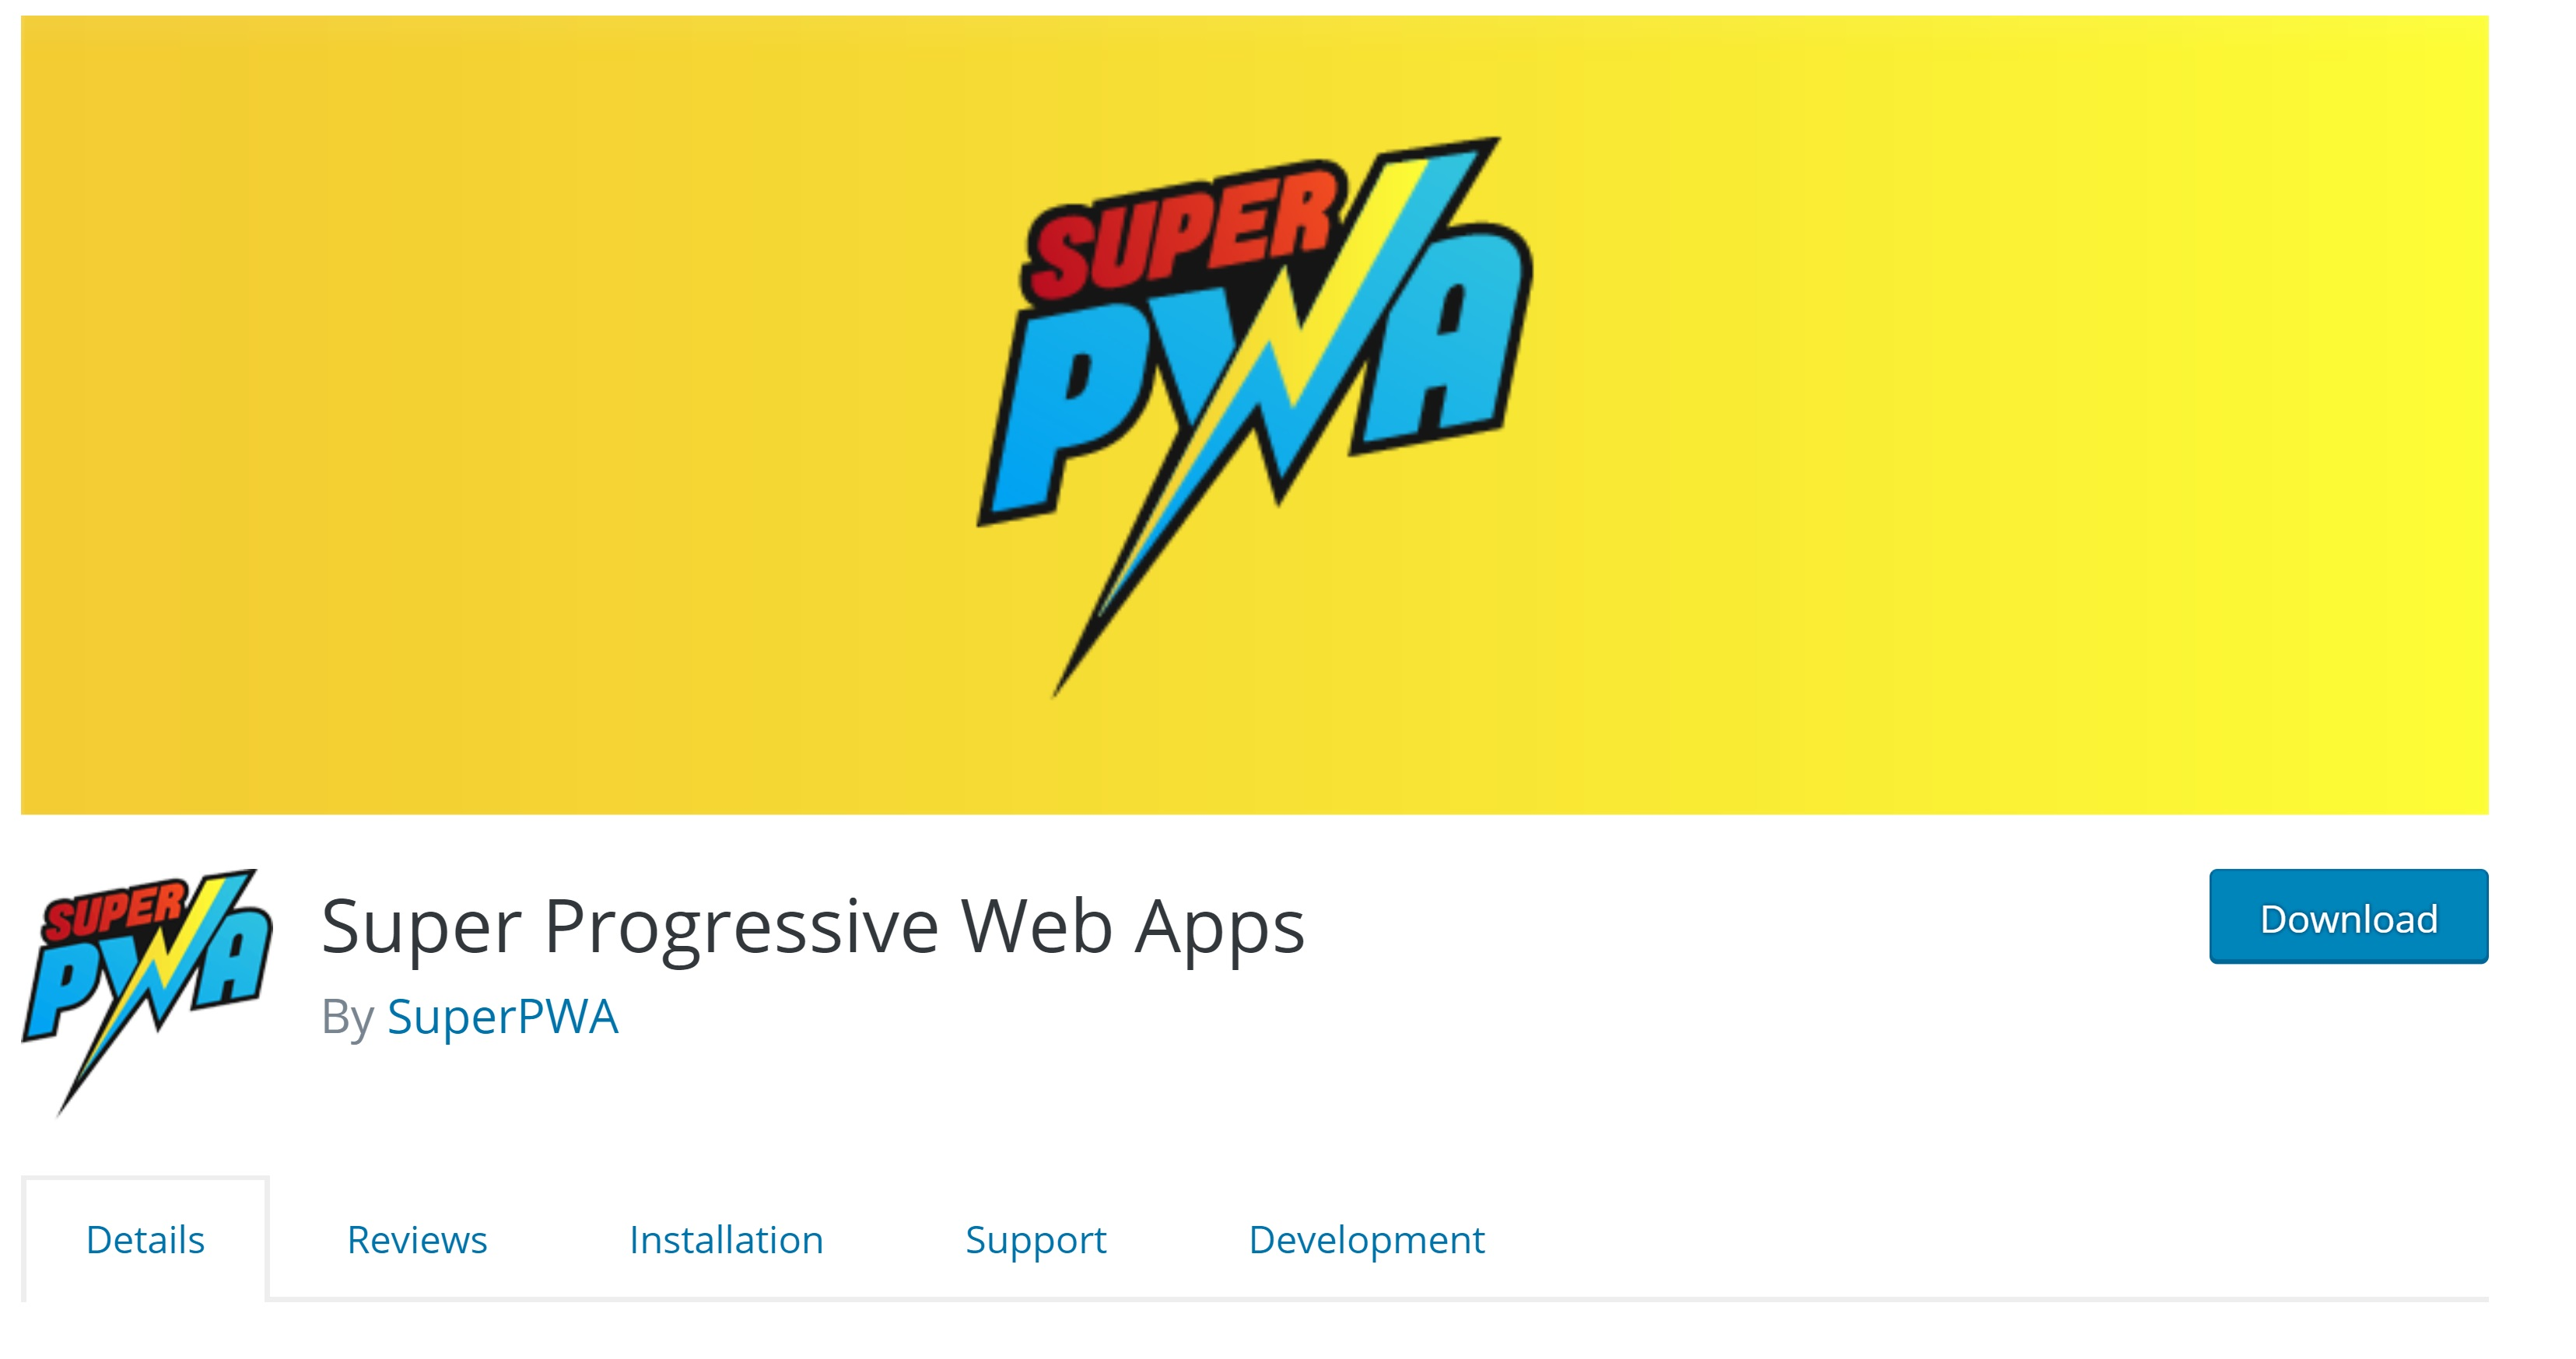 Super Progressive Web Apps enables PWA on your website